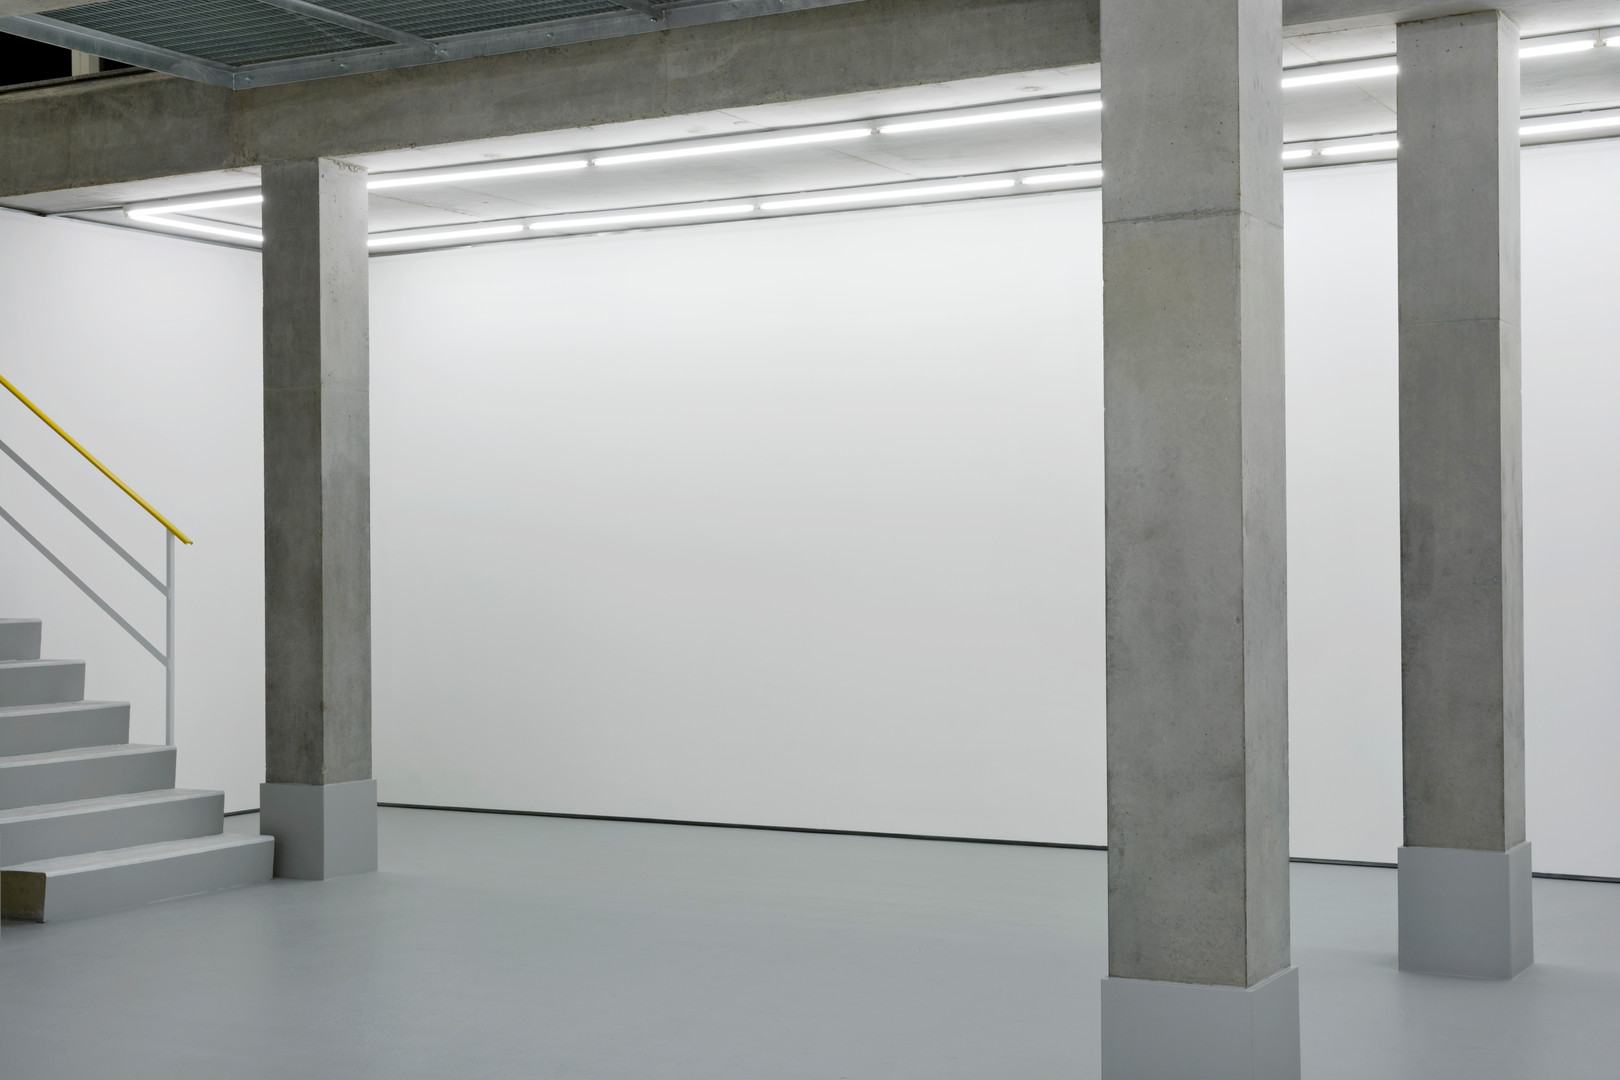 main gallery space